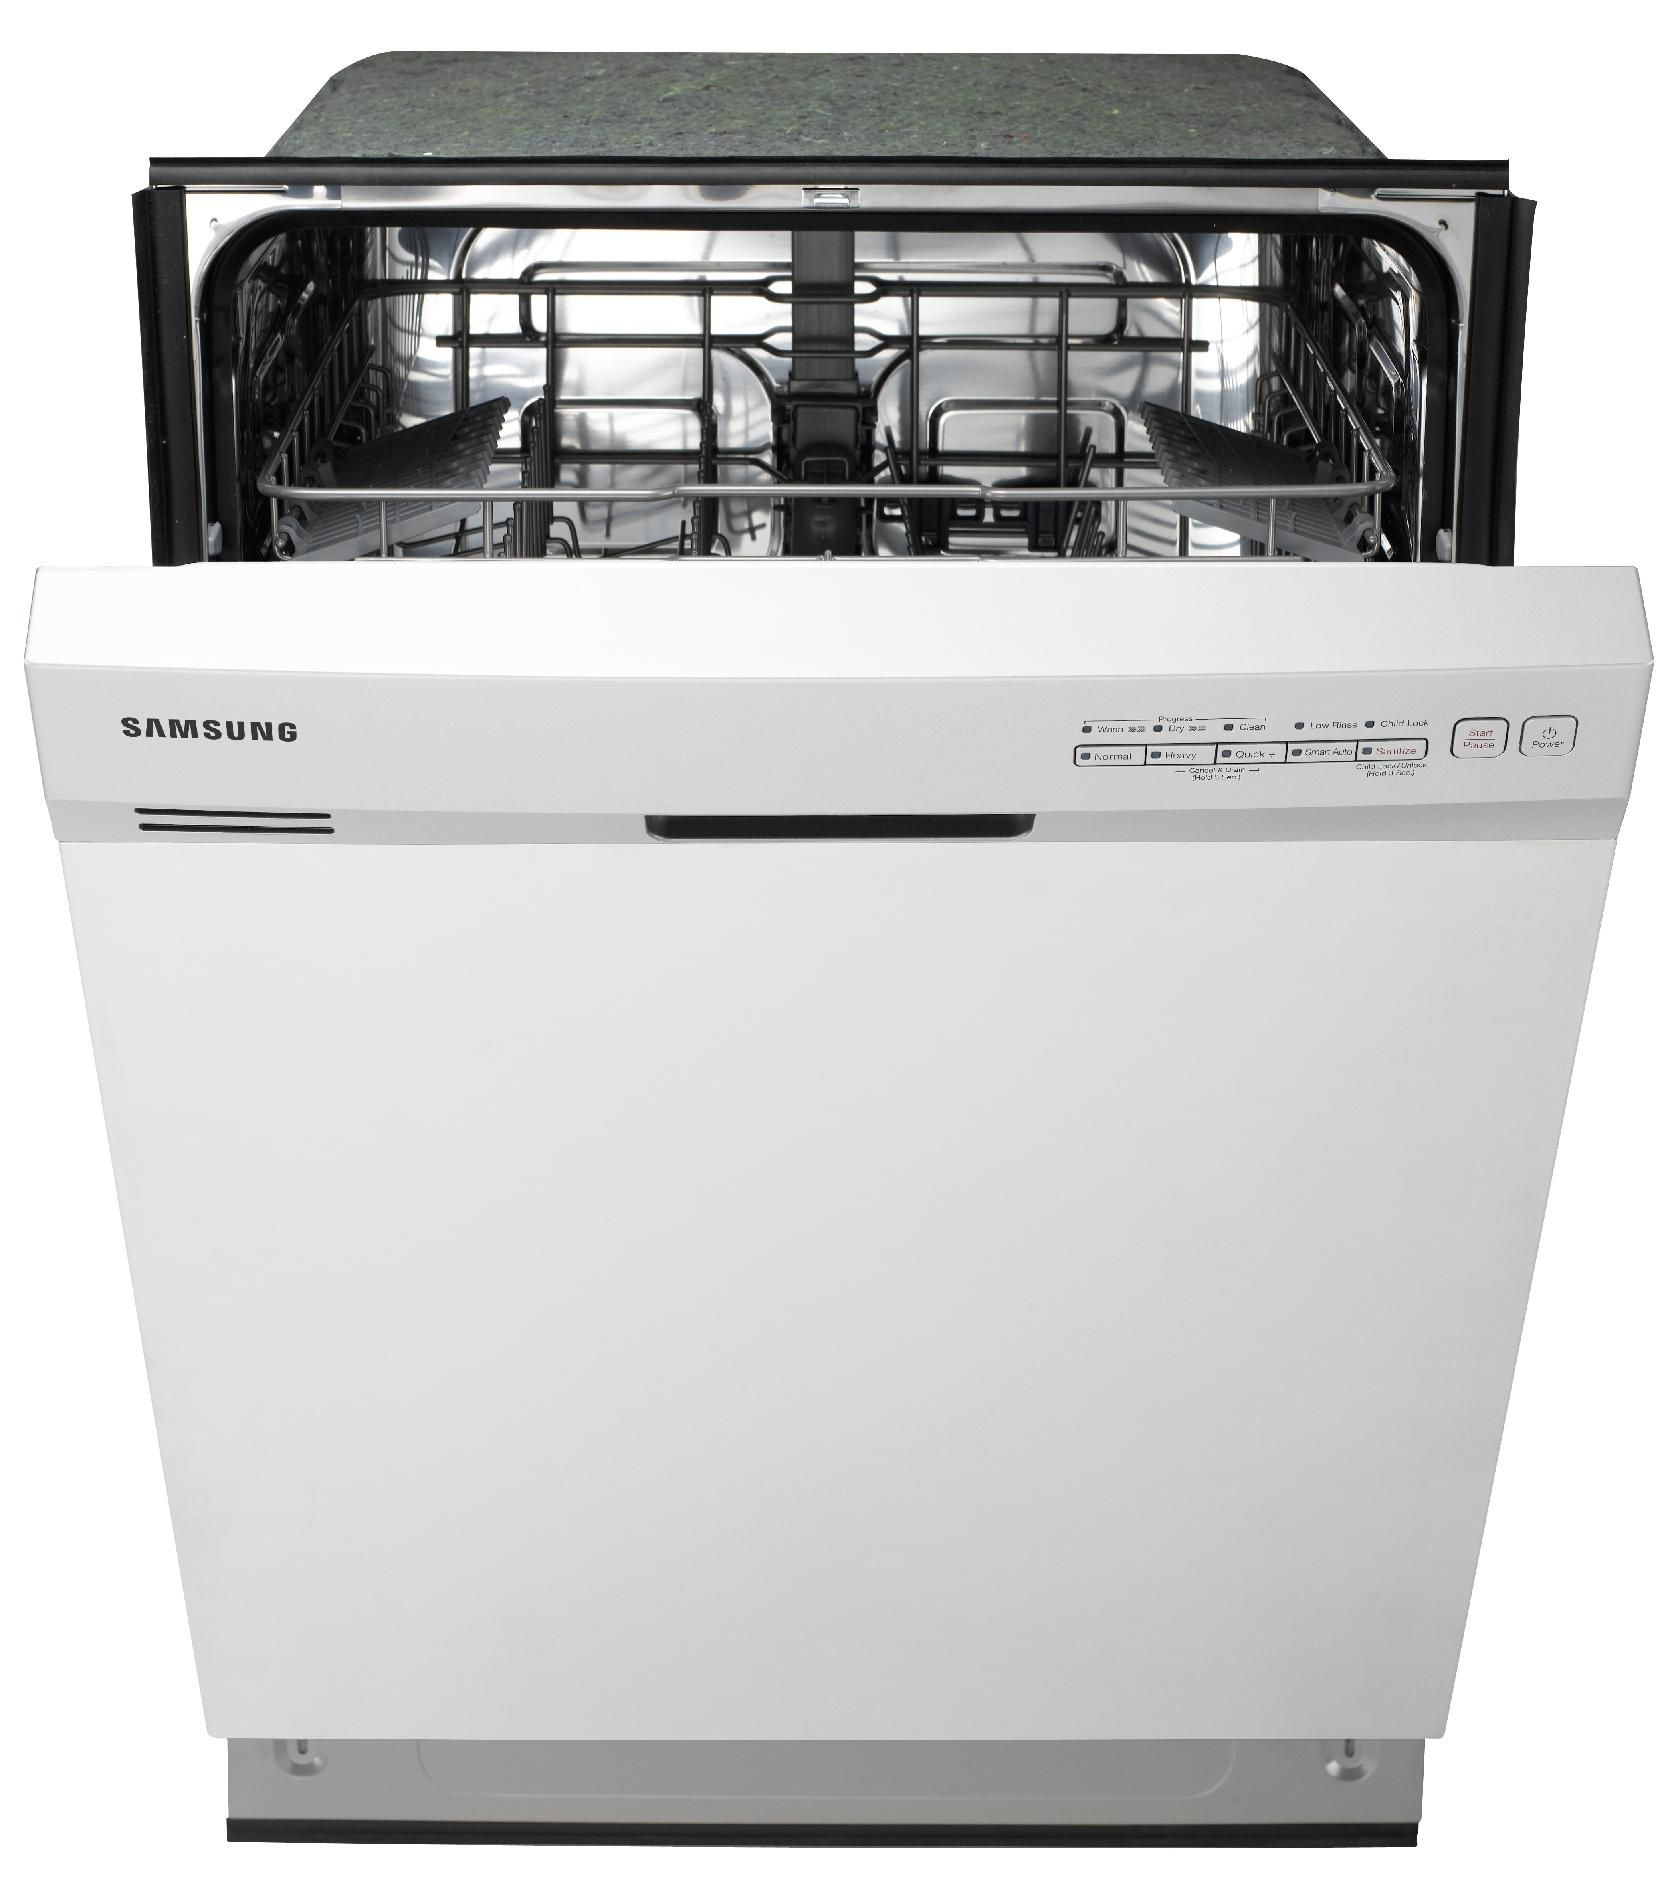 "Samsung 24"" Built-in 4-Cycle Dishwasher - White"